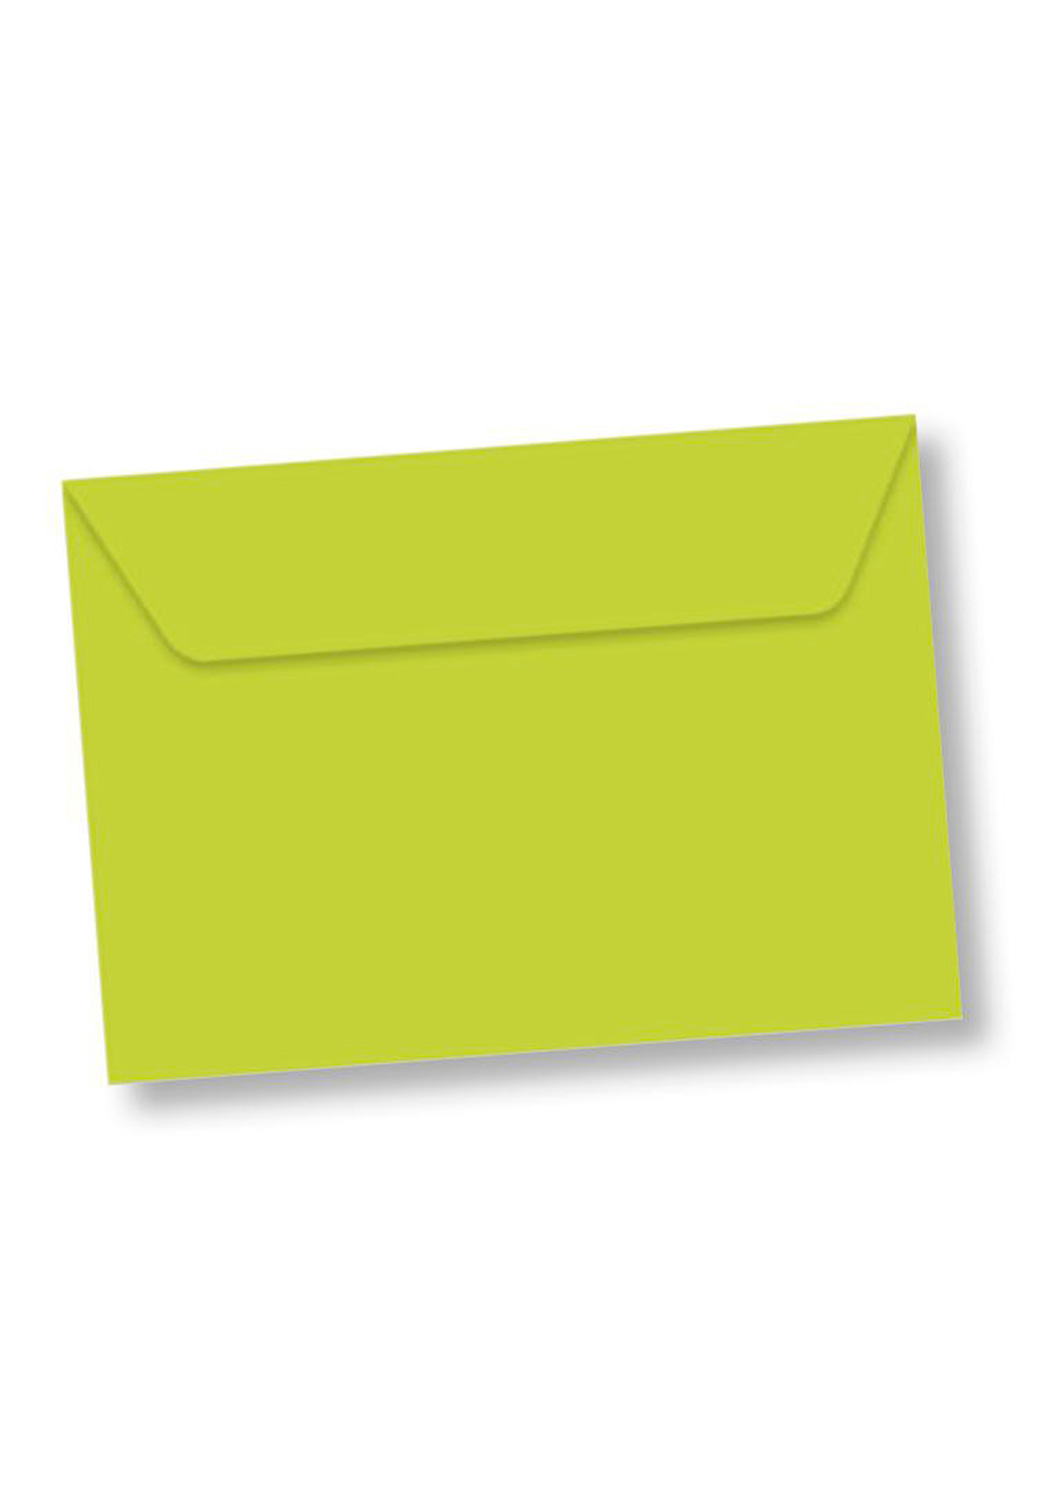 Marcello-art: Wish Card Rectangle envelope A5 velin 162x229 mm color bamboo